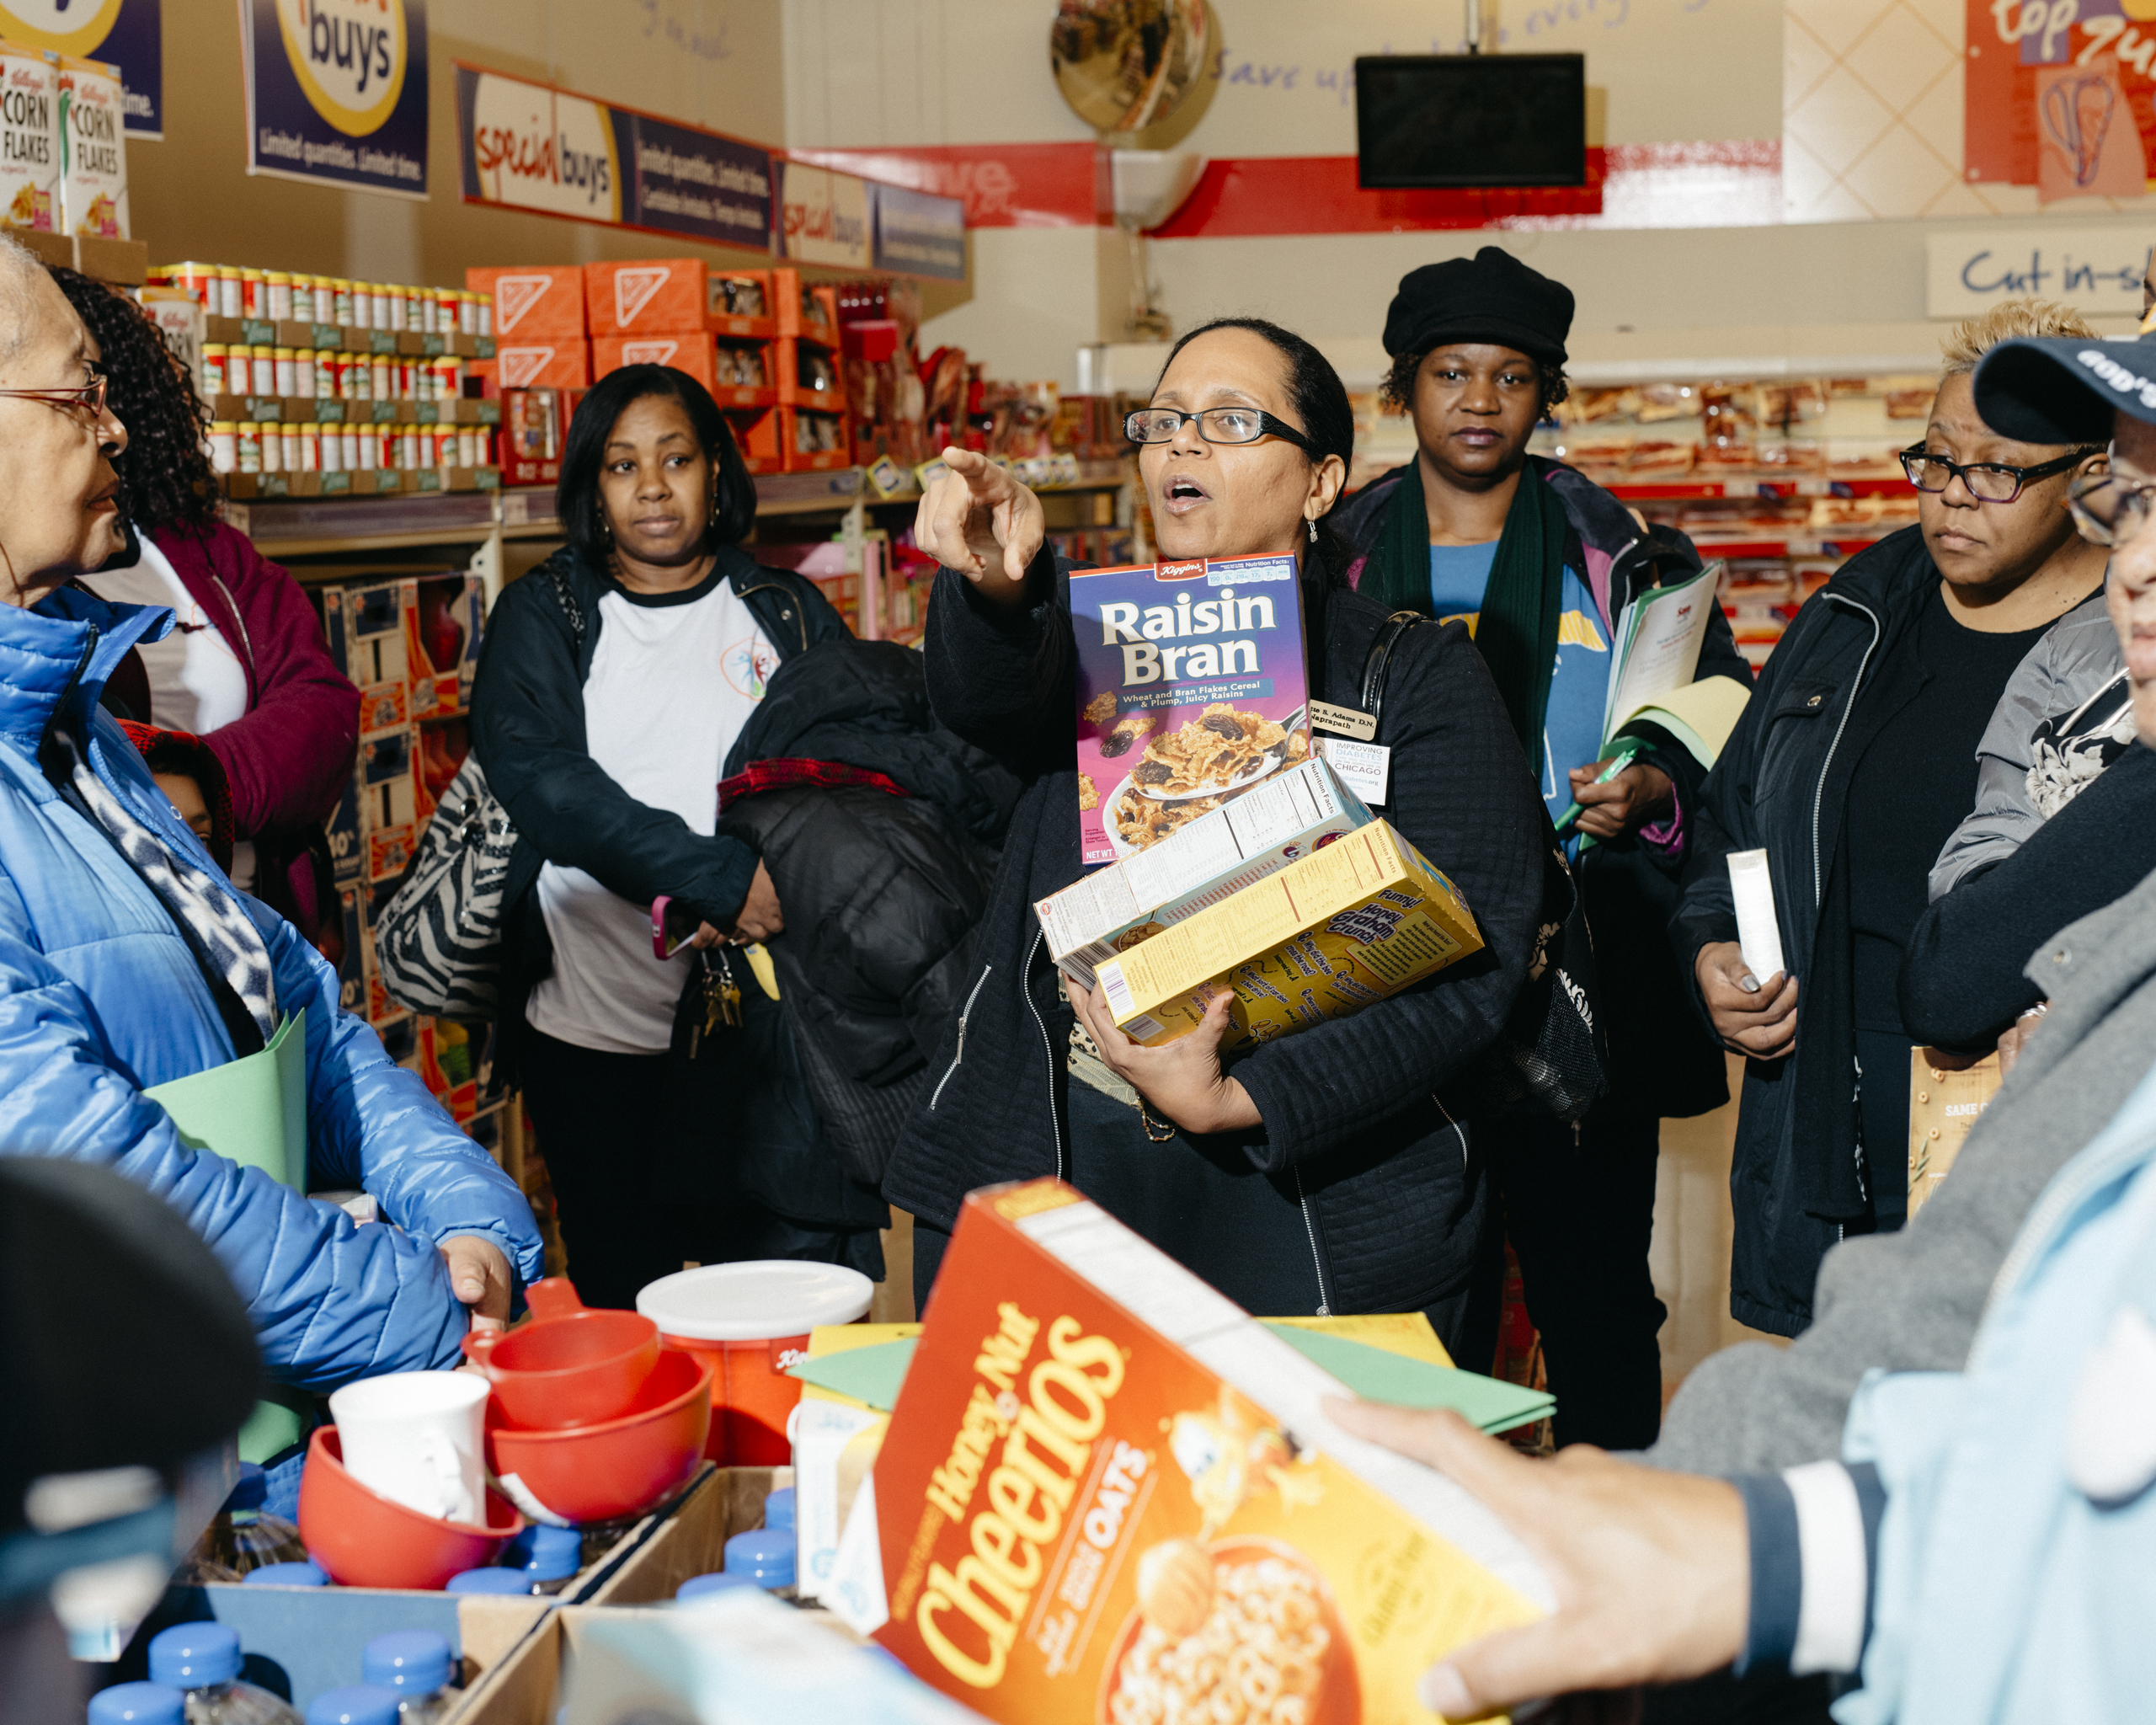 The South Side Diabetes Project teaches shoppers how to count carbohydrates